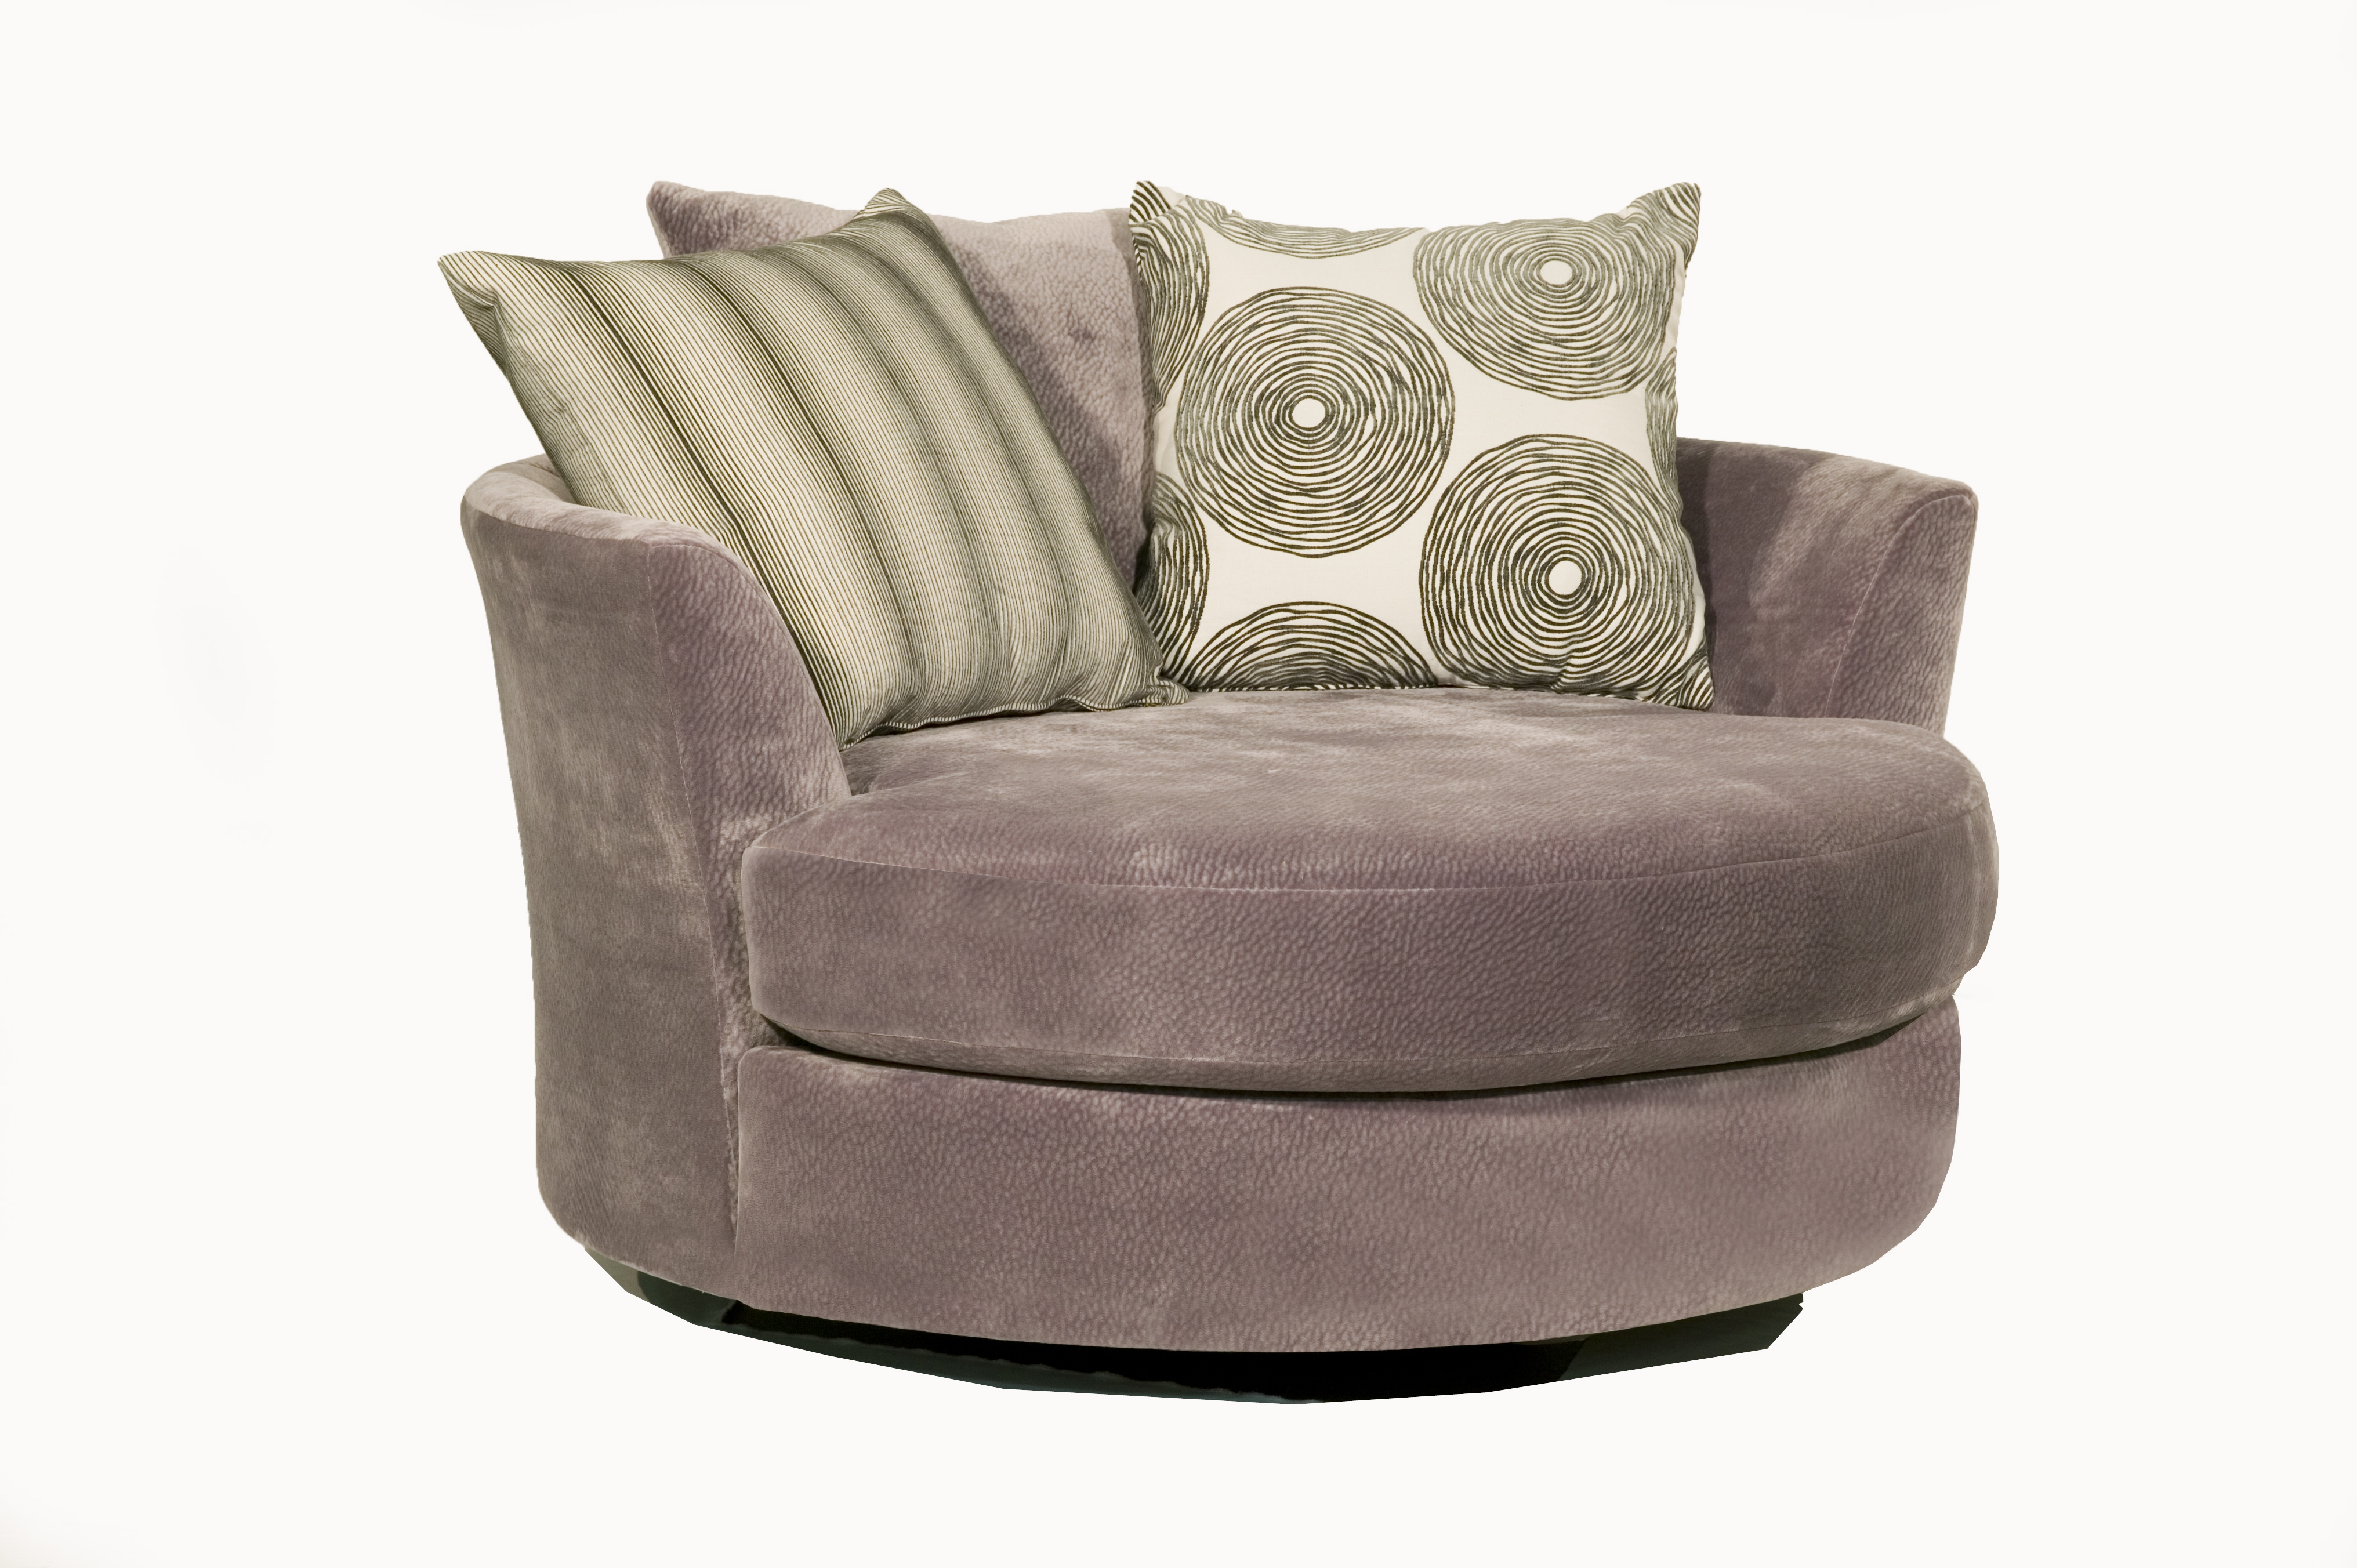 Sofas Center Shocking Round Sofaair Picture Concept Big Circle Within Big Round Sofa Chairs (Image 15 of 15)